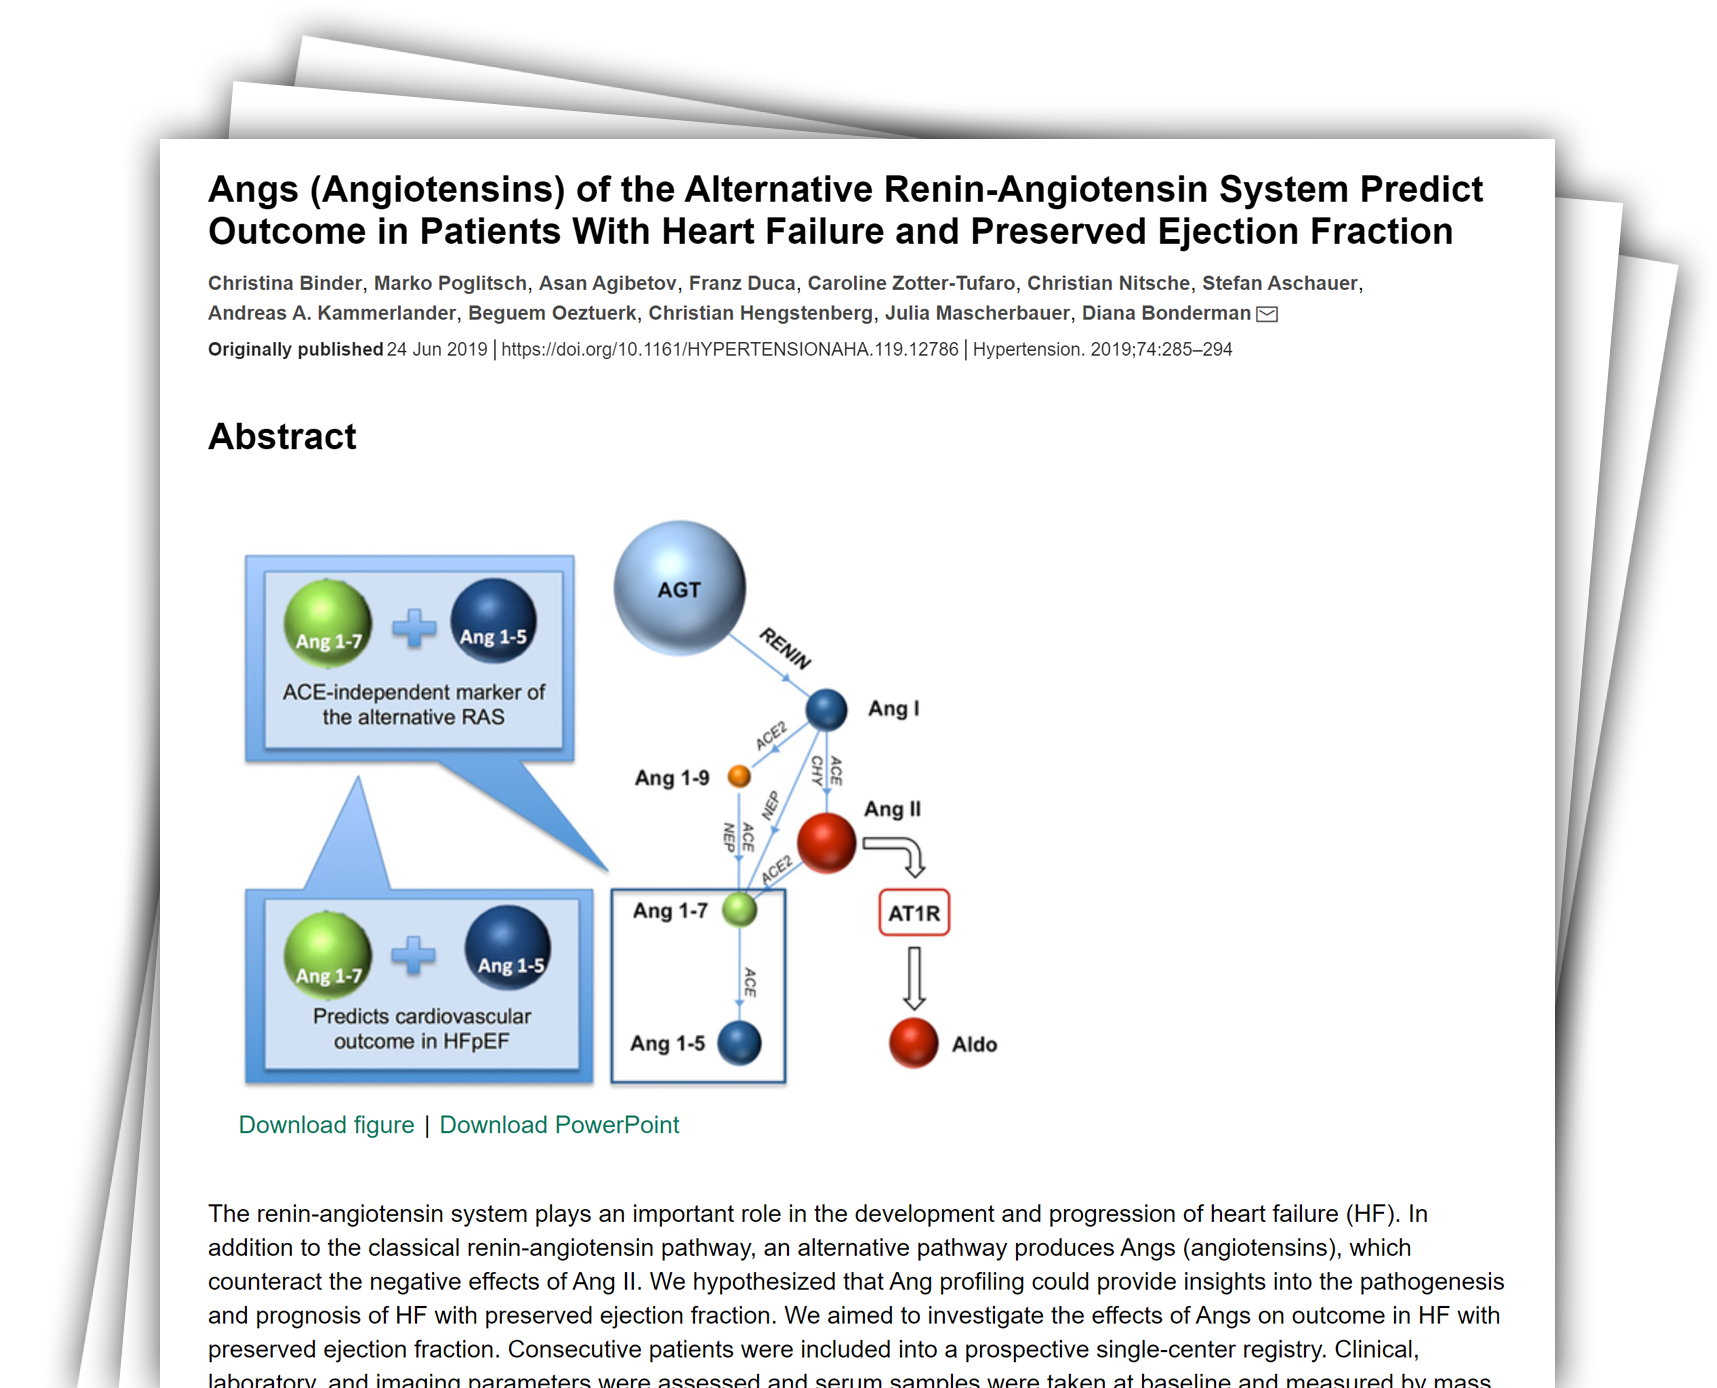 Angs (Angiotensins) of the Alternative Renin-Angiotensin System Predict Outcome in Patients With Heart Failure and Preserved Ejection Fraction